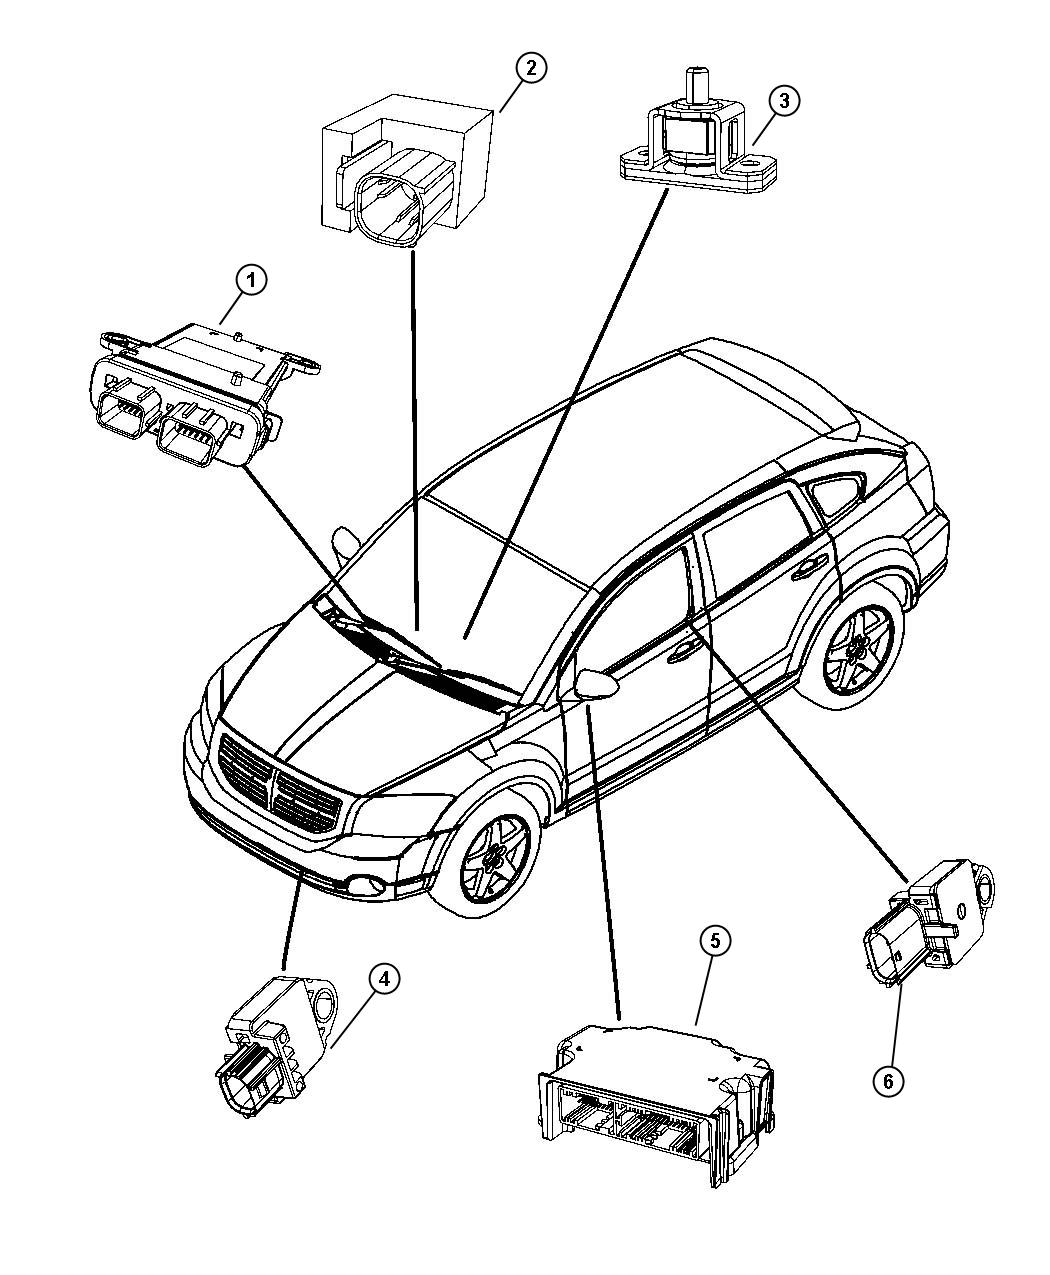 2007 dodge caliber horn wiring diagram 2002 chevy tahoe engine 07 fuse box location library